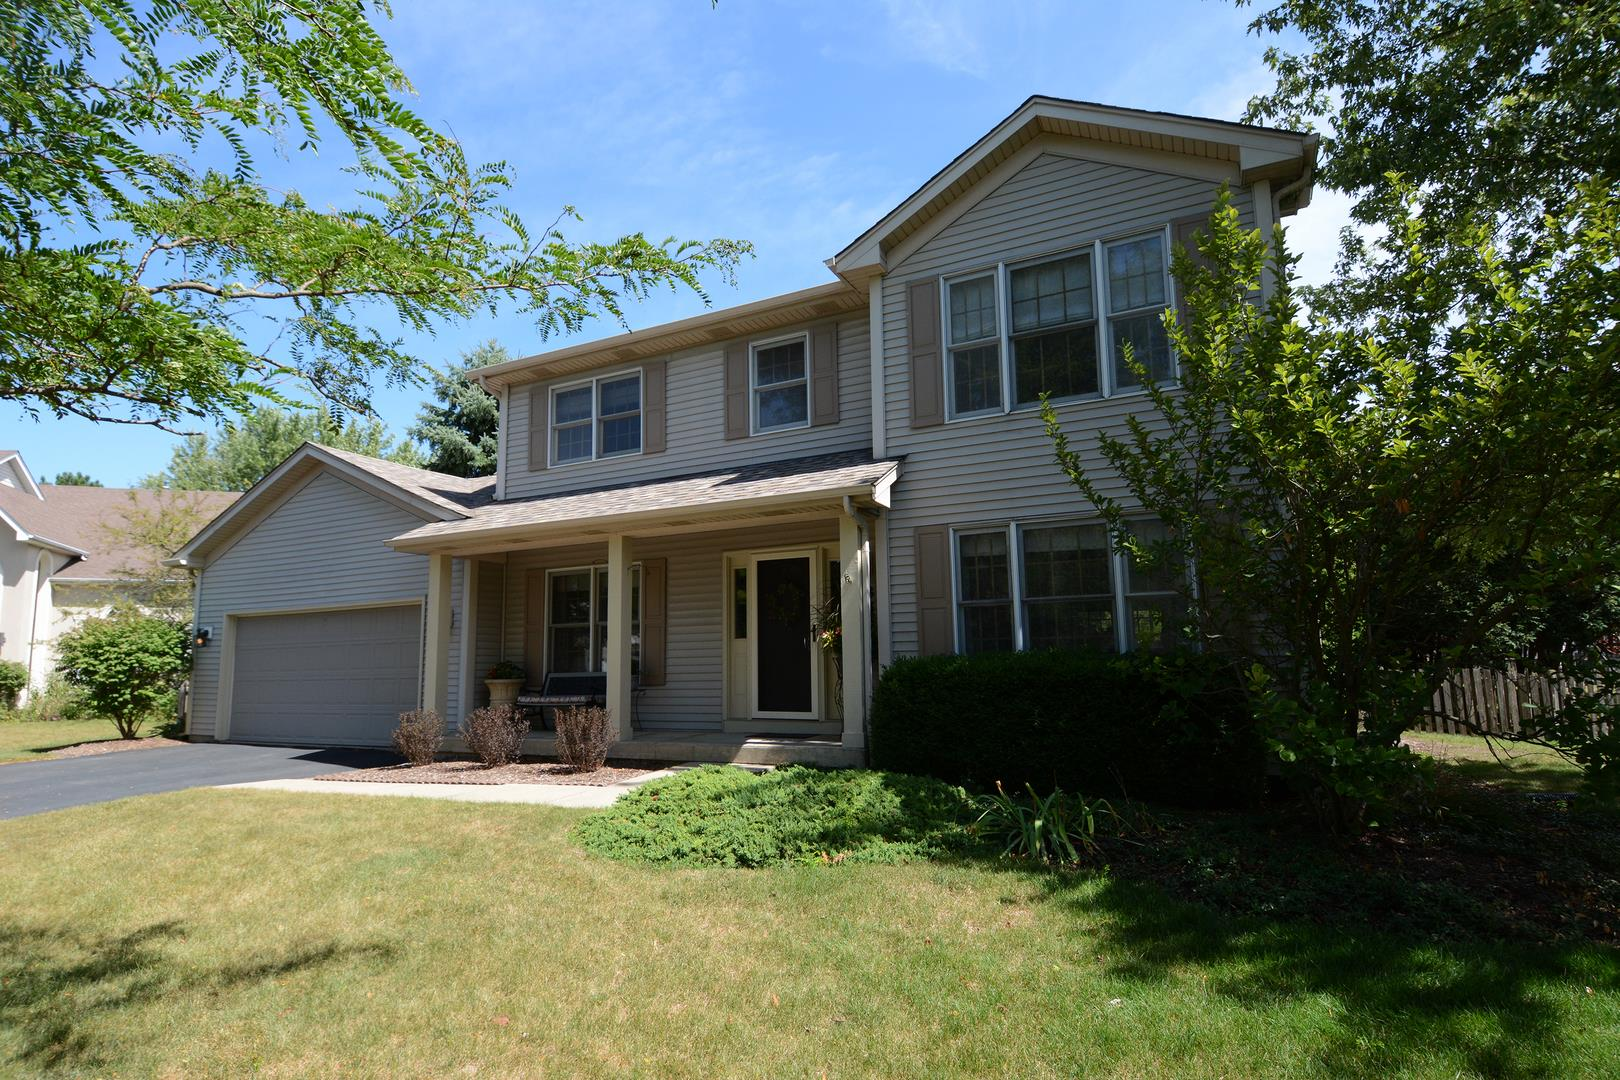 833 Weston Court, Elburn, IL 60119 - #: 10846251